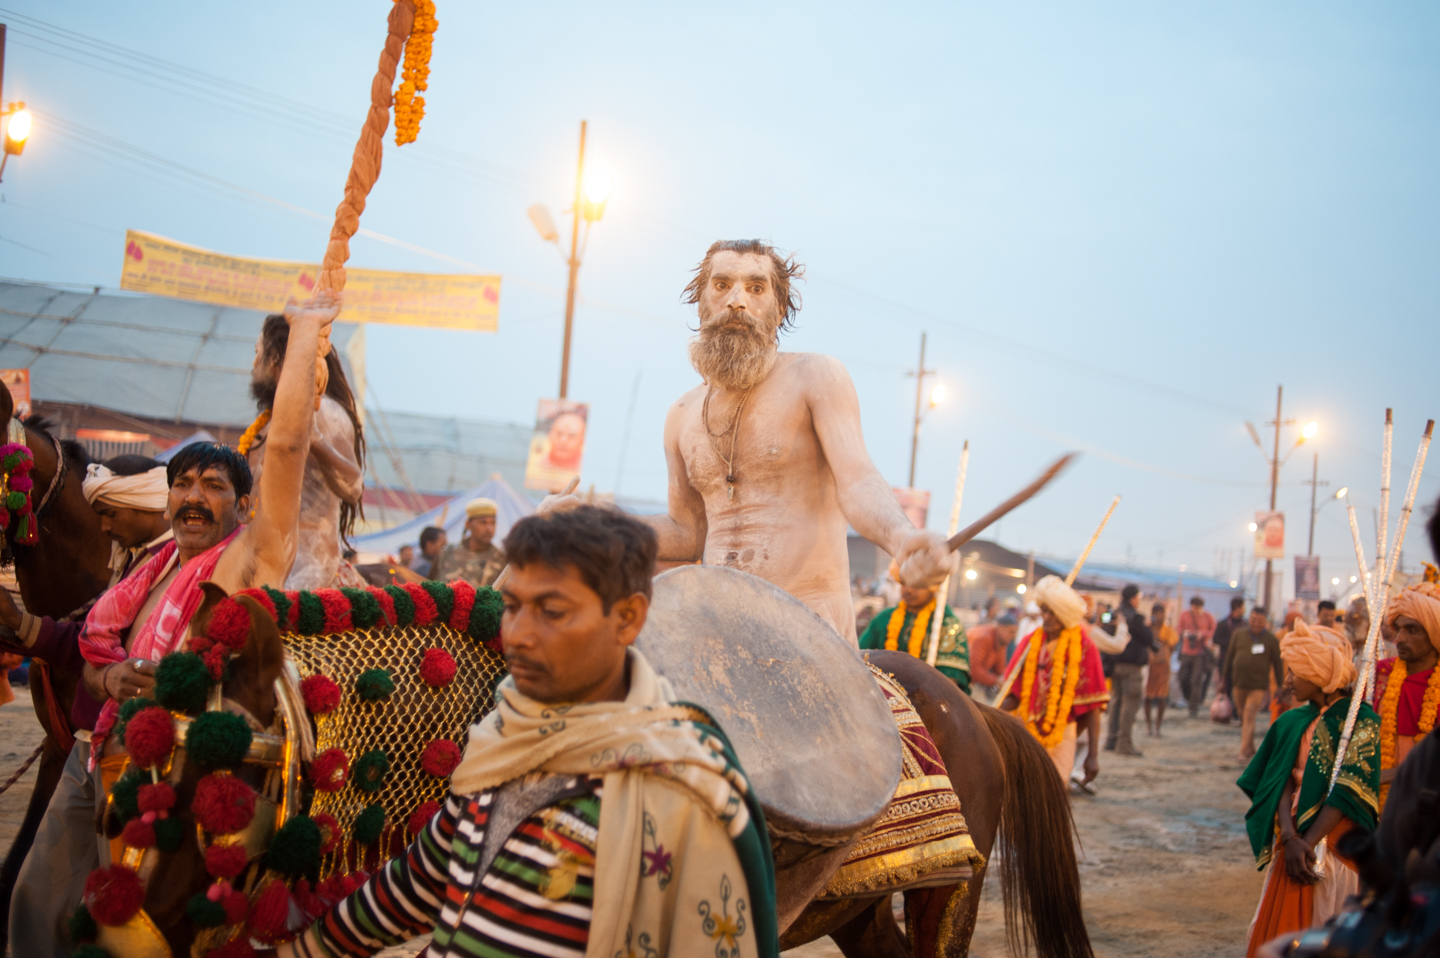 Sadhu returning to his camp